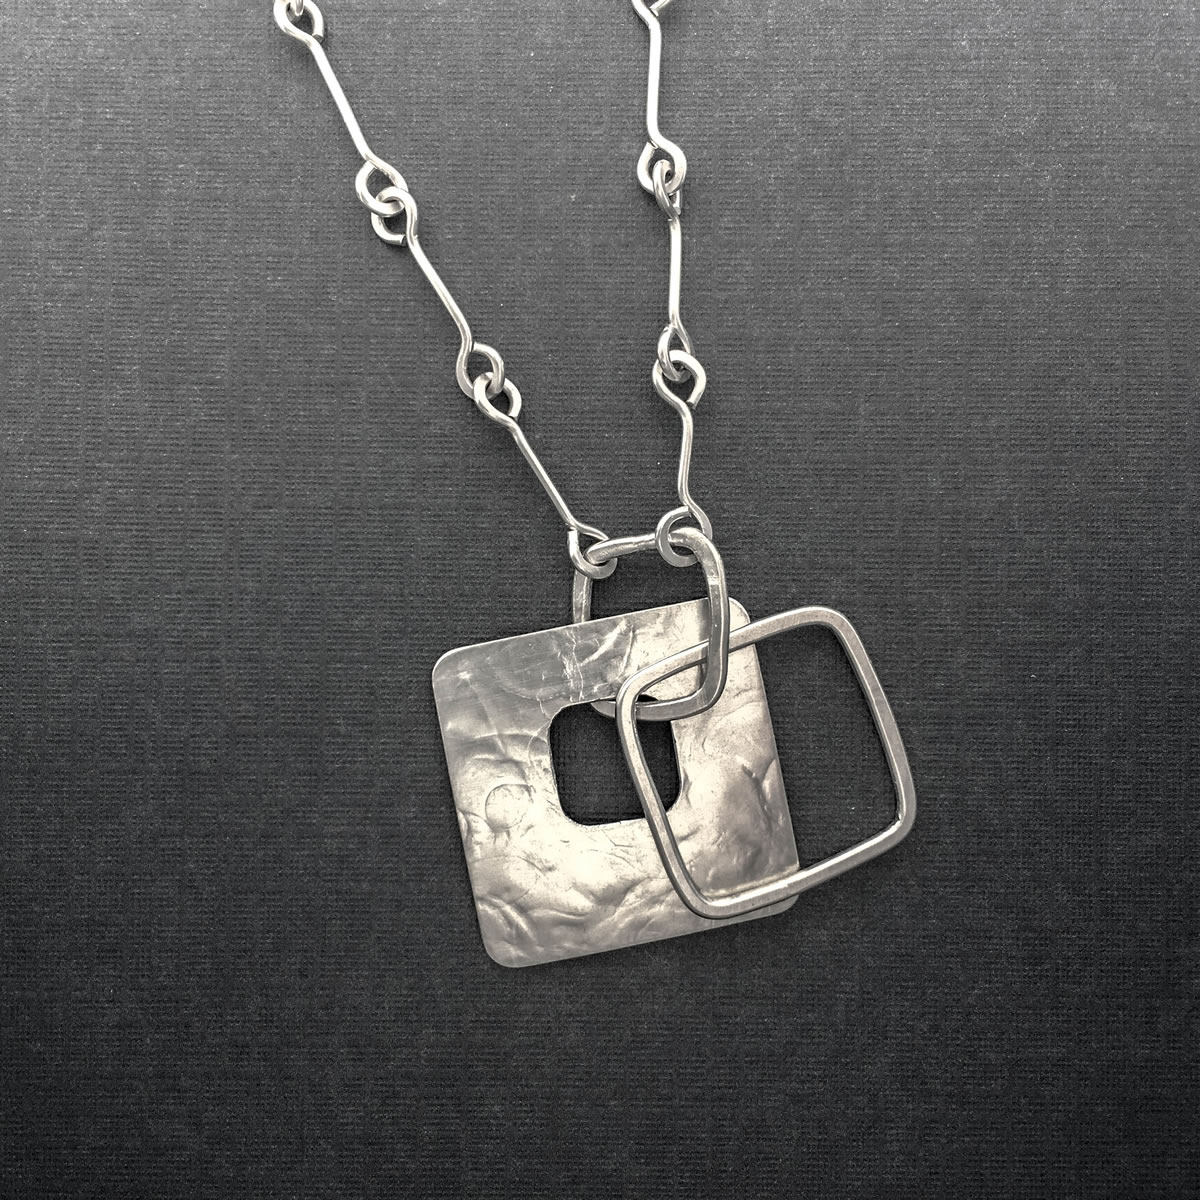 large silver square pendant necklace p loop silver chain